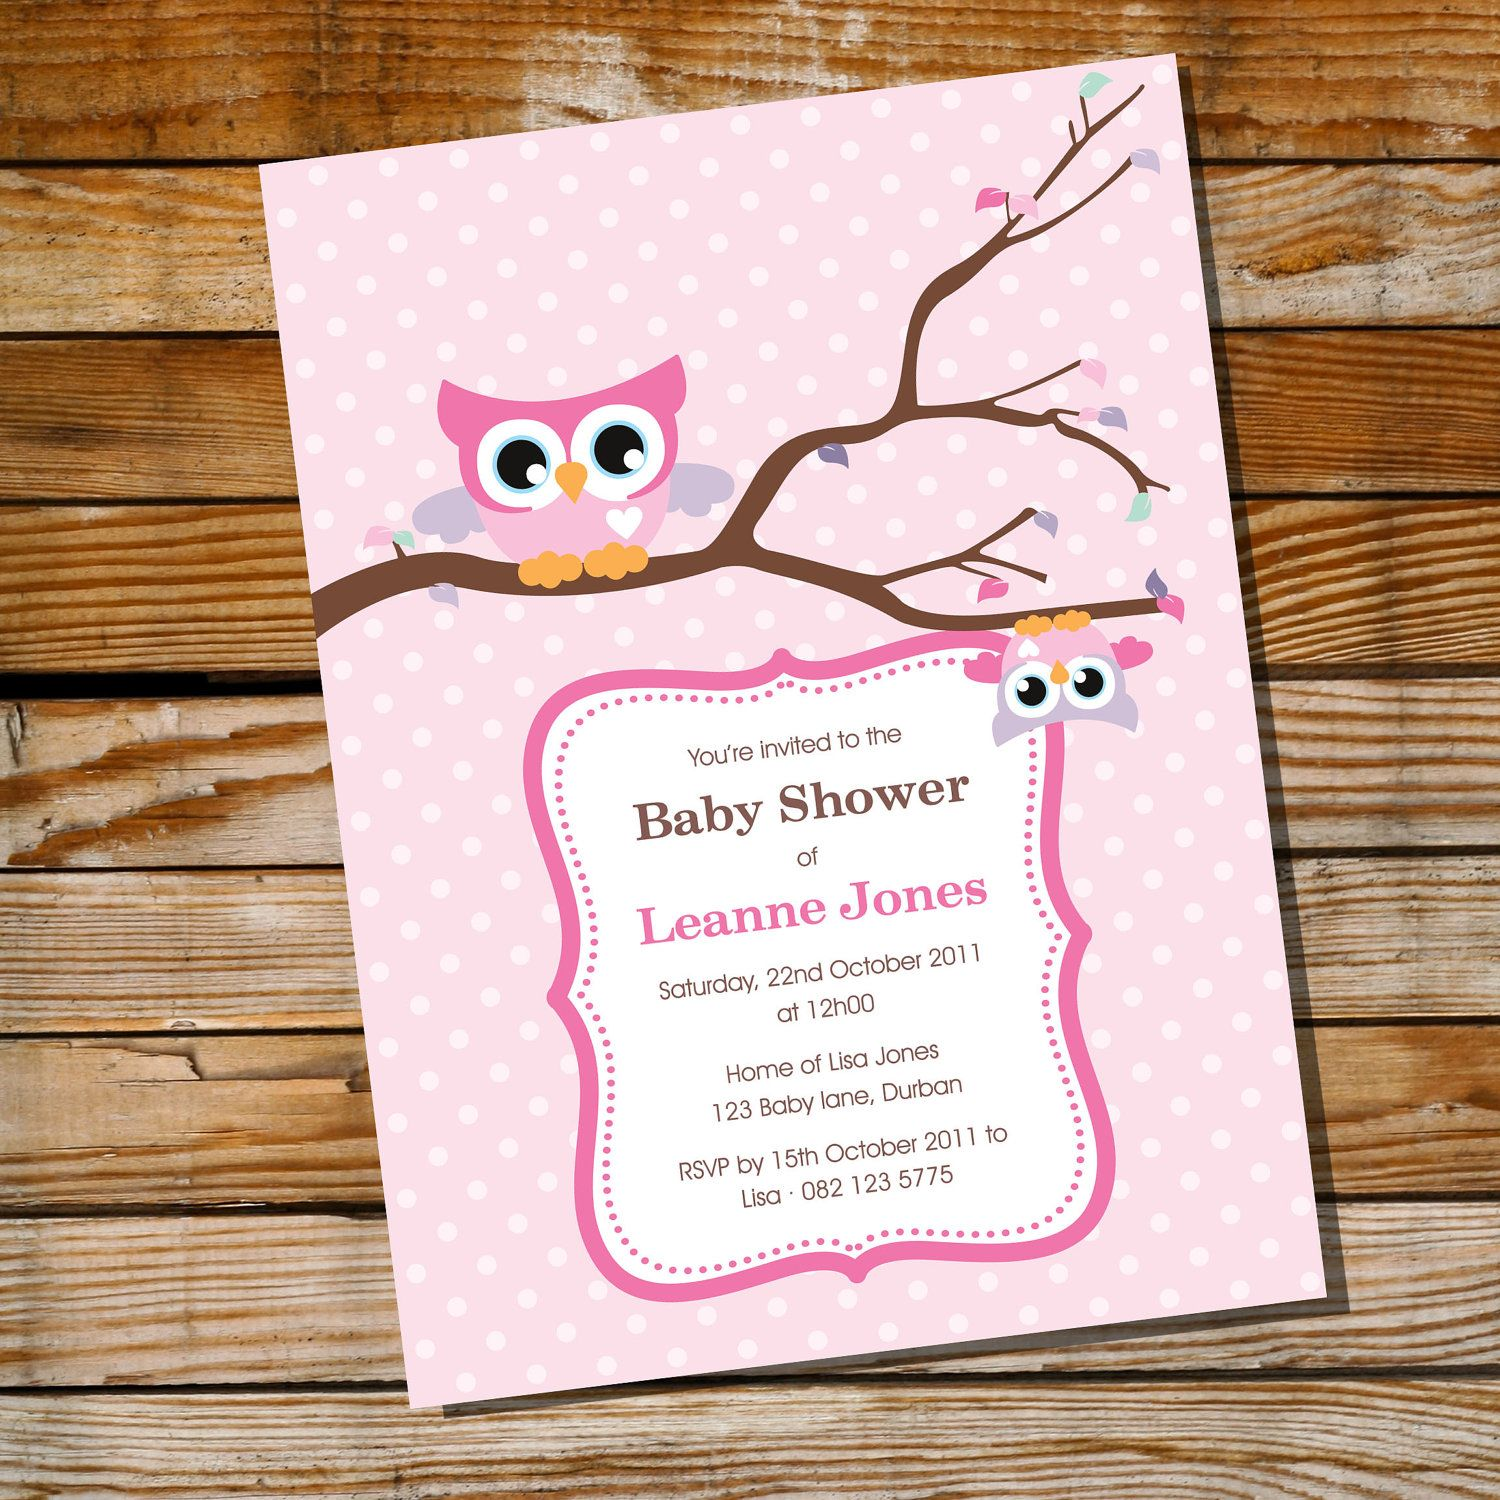 Cute Baby Owl Invitations and Decorations for a by SunshineParties ...